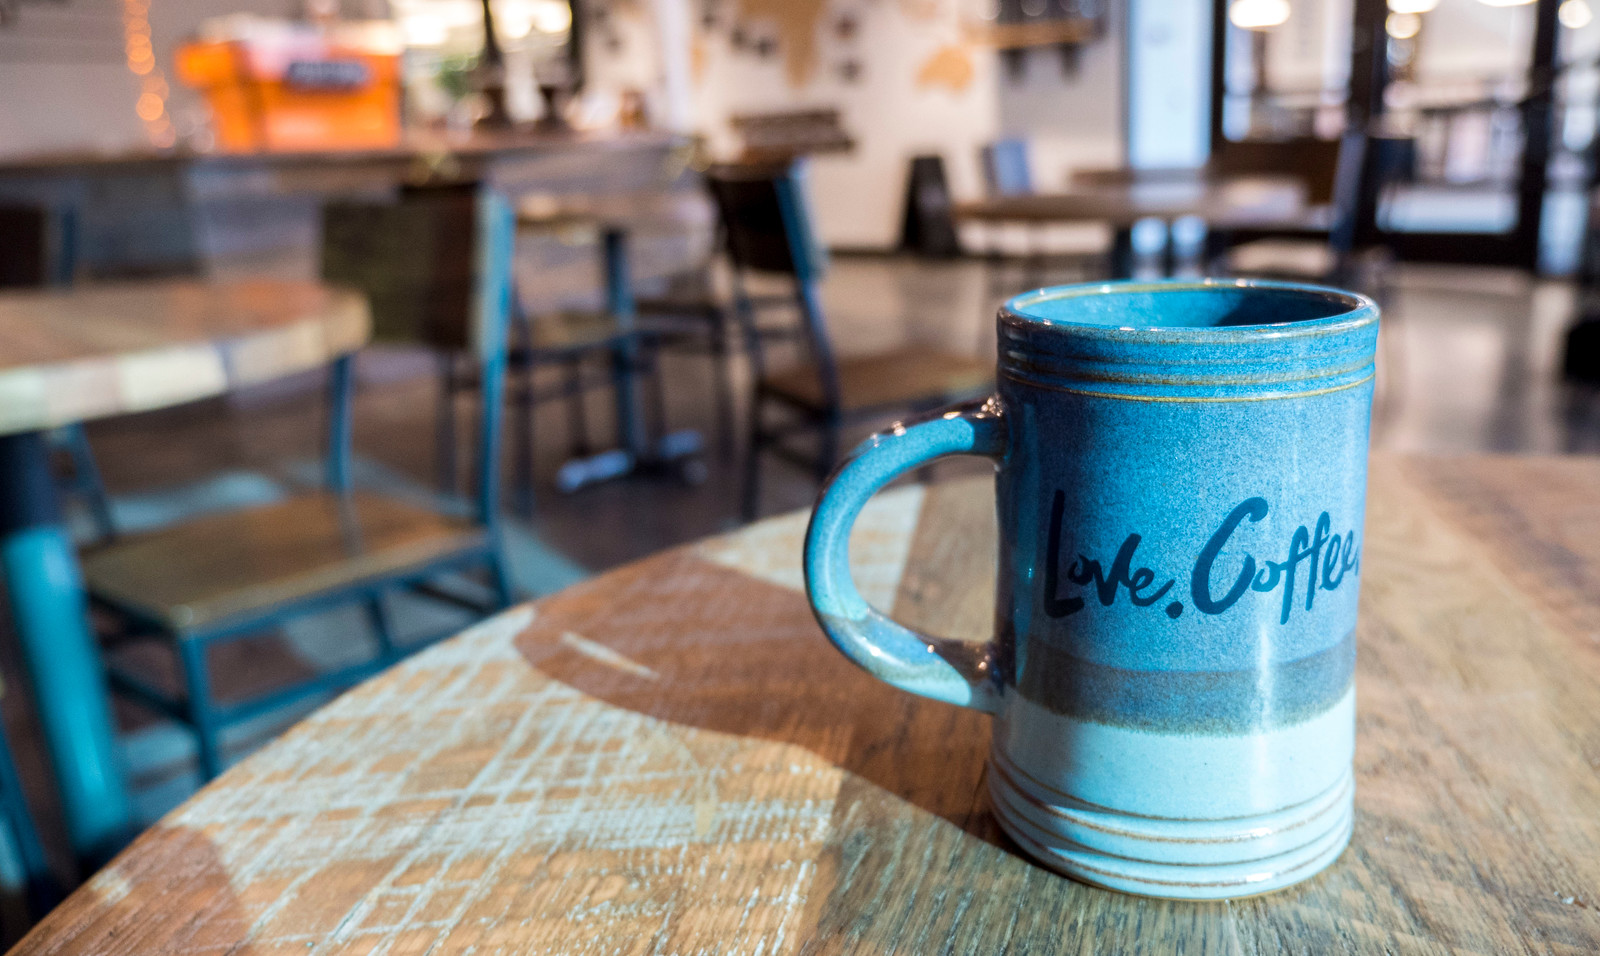 Things to Do in Nashville - Drink Awesome Coffee